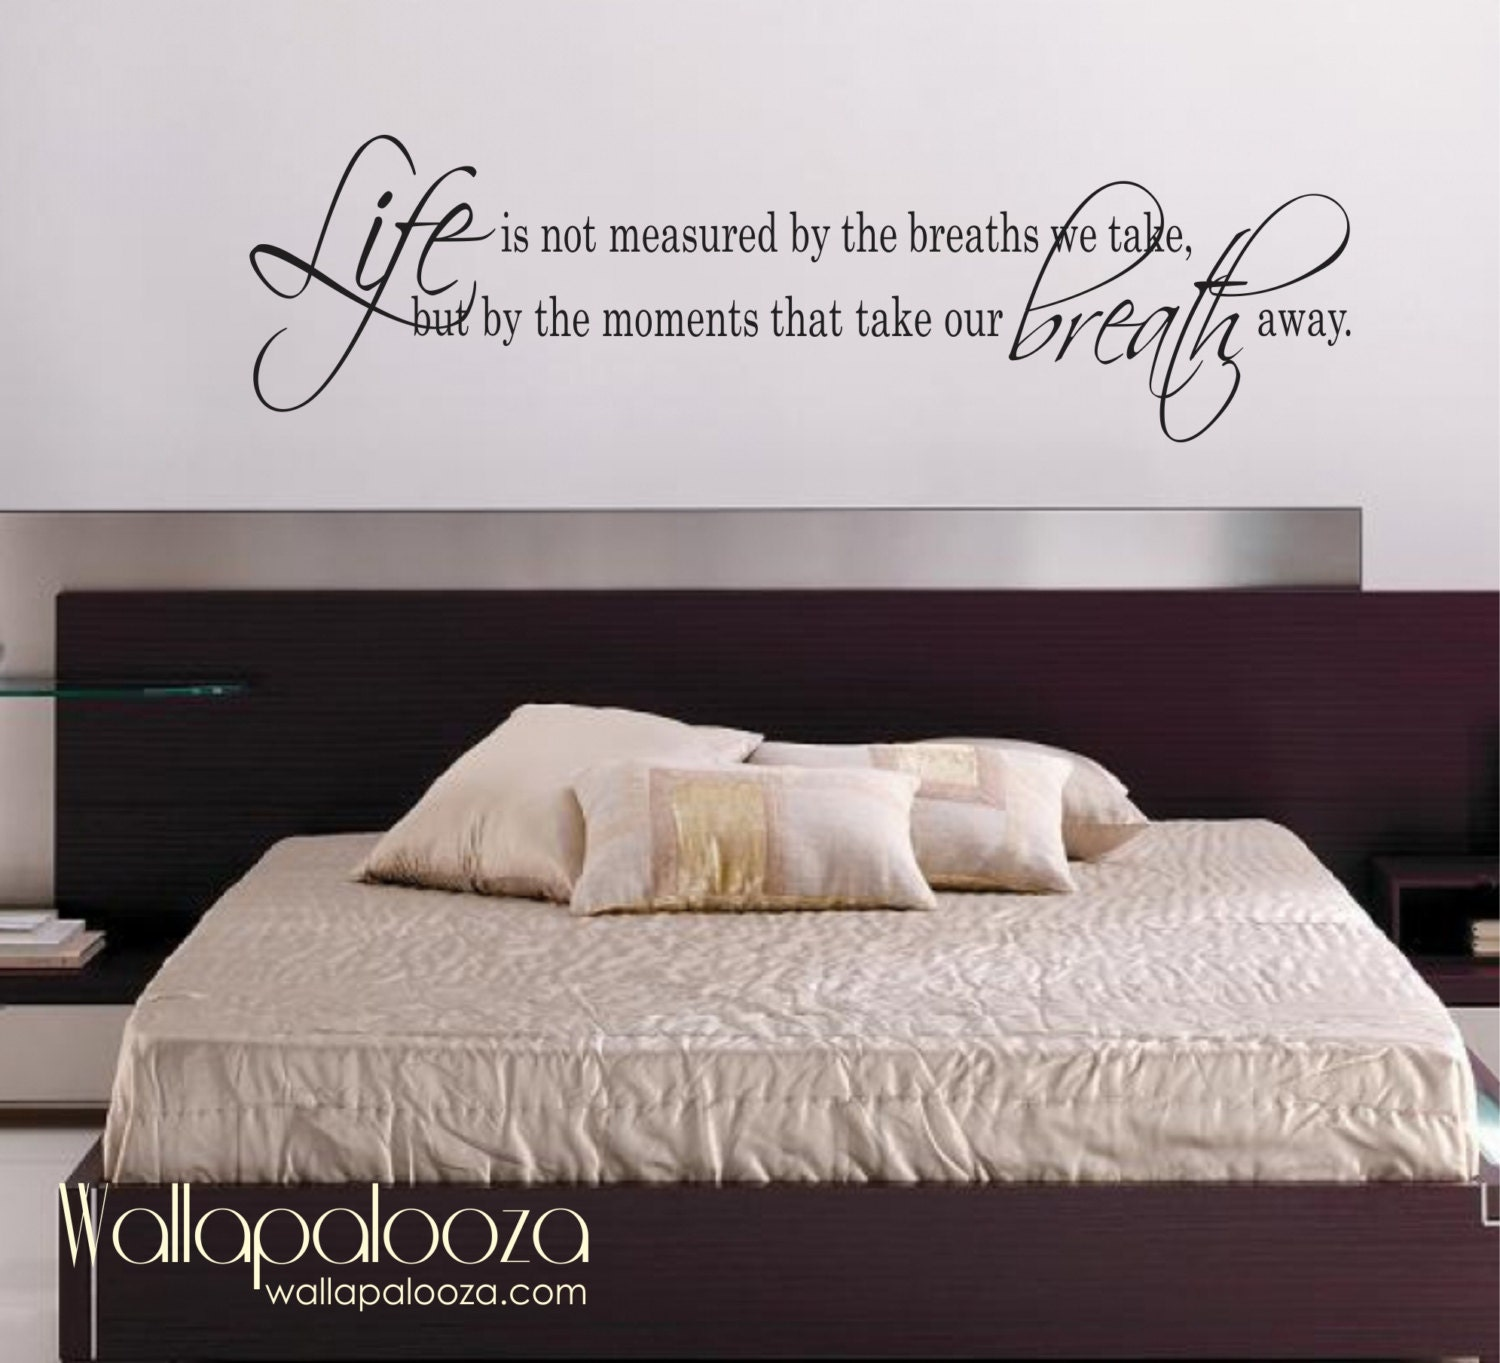 Life is not measured wall decal love wall decal bedroom zoom amipublicfo Choice Image